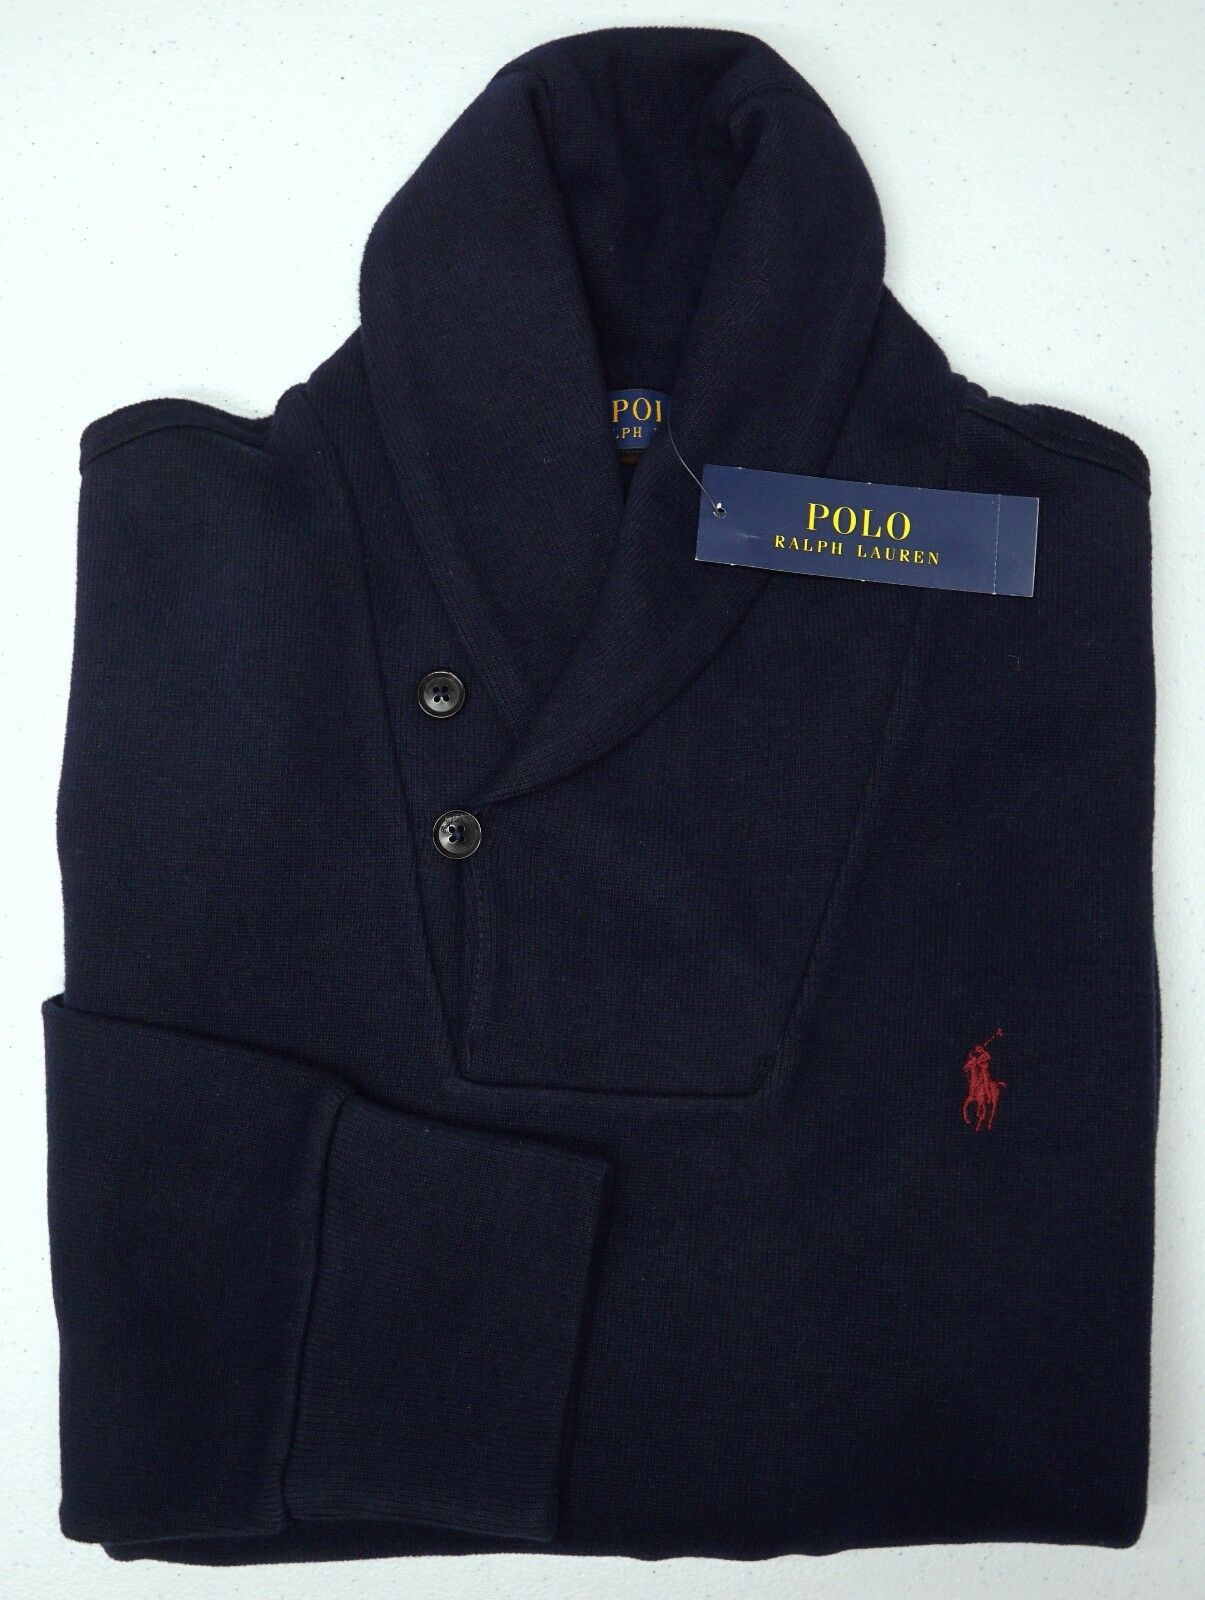 NWT 125 Polo Ralph Lauren Navy Blau Sweater  Herren Größe L Long Sleeve Cotton NEW